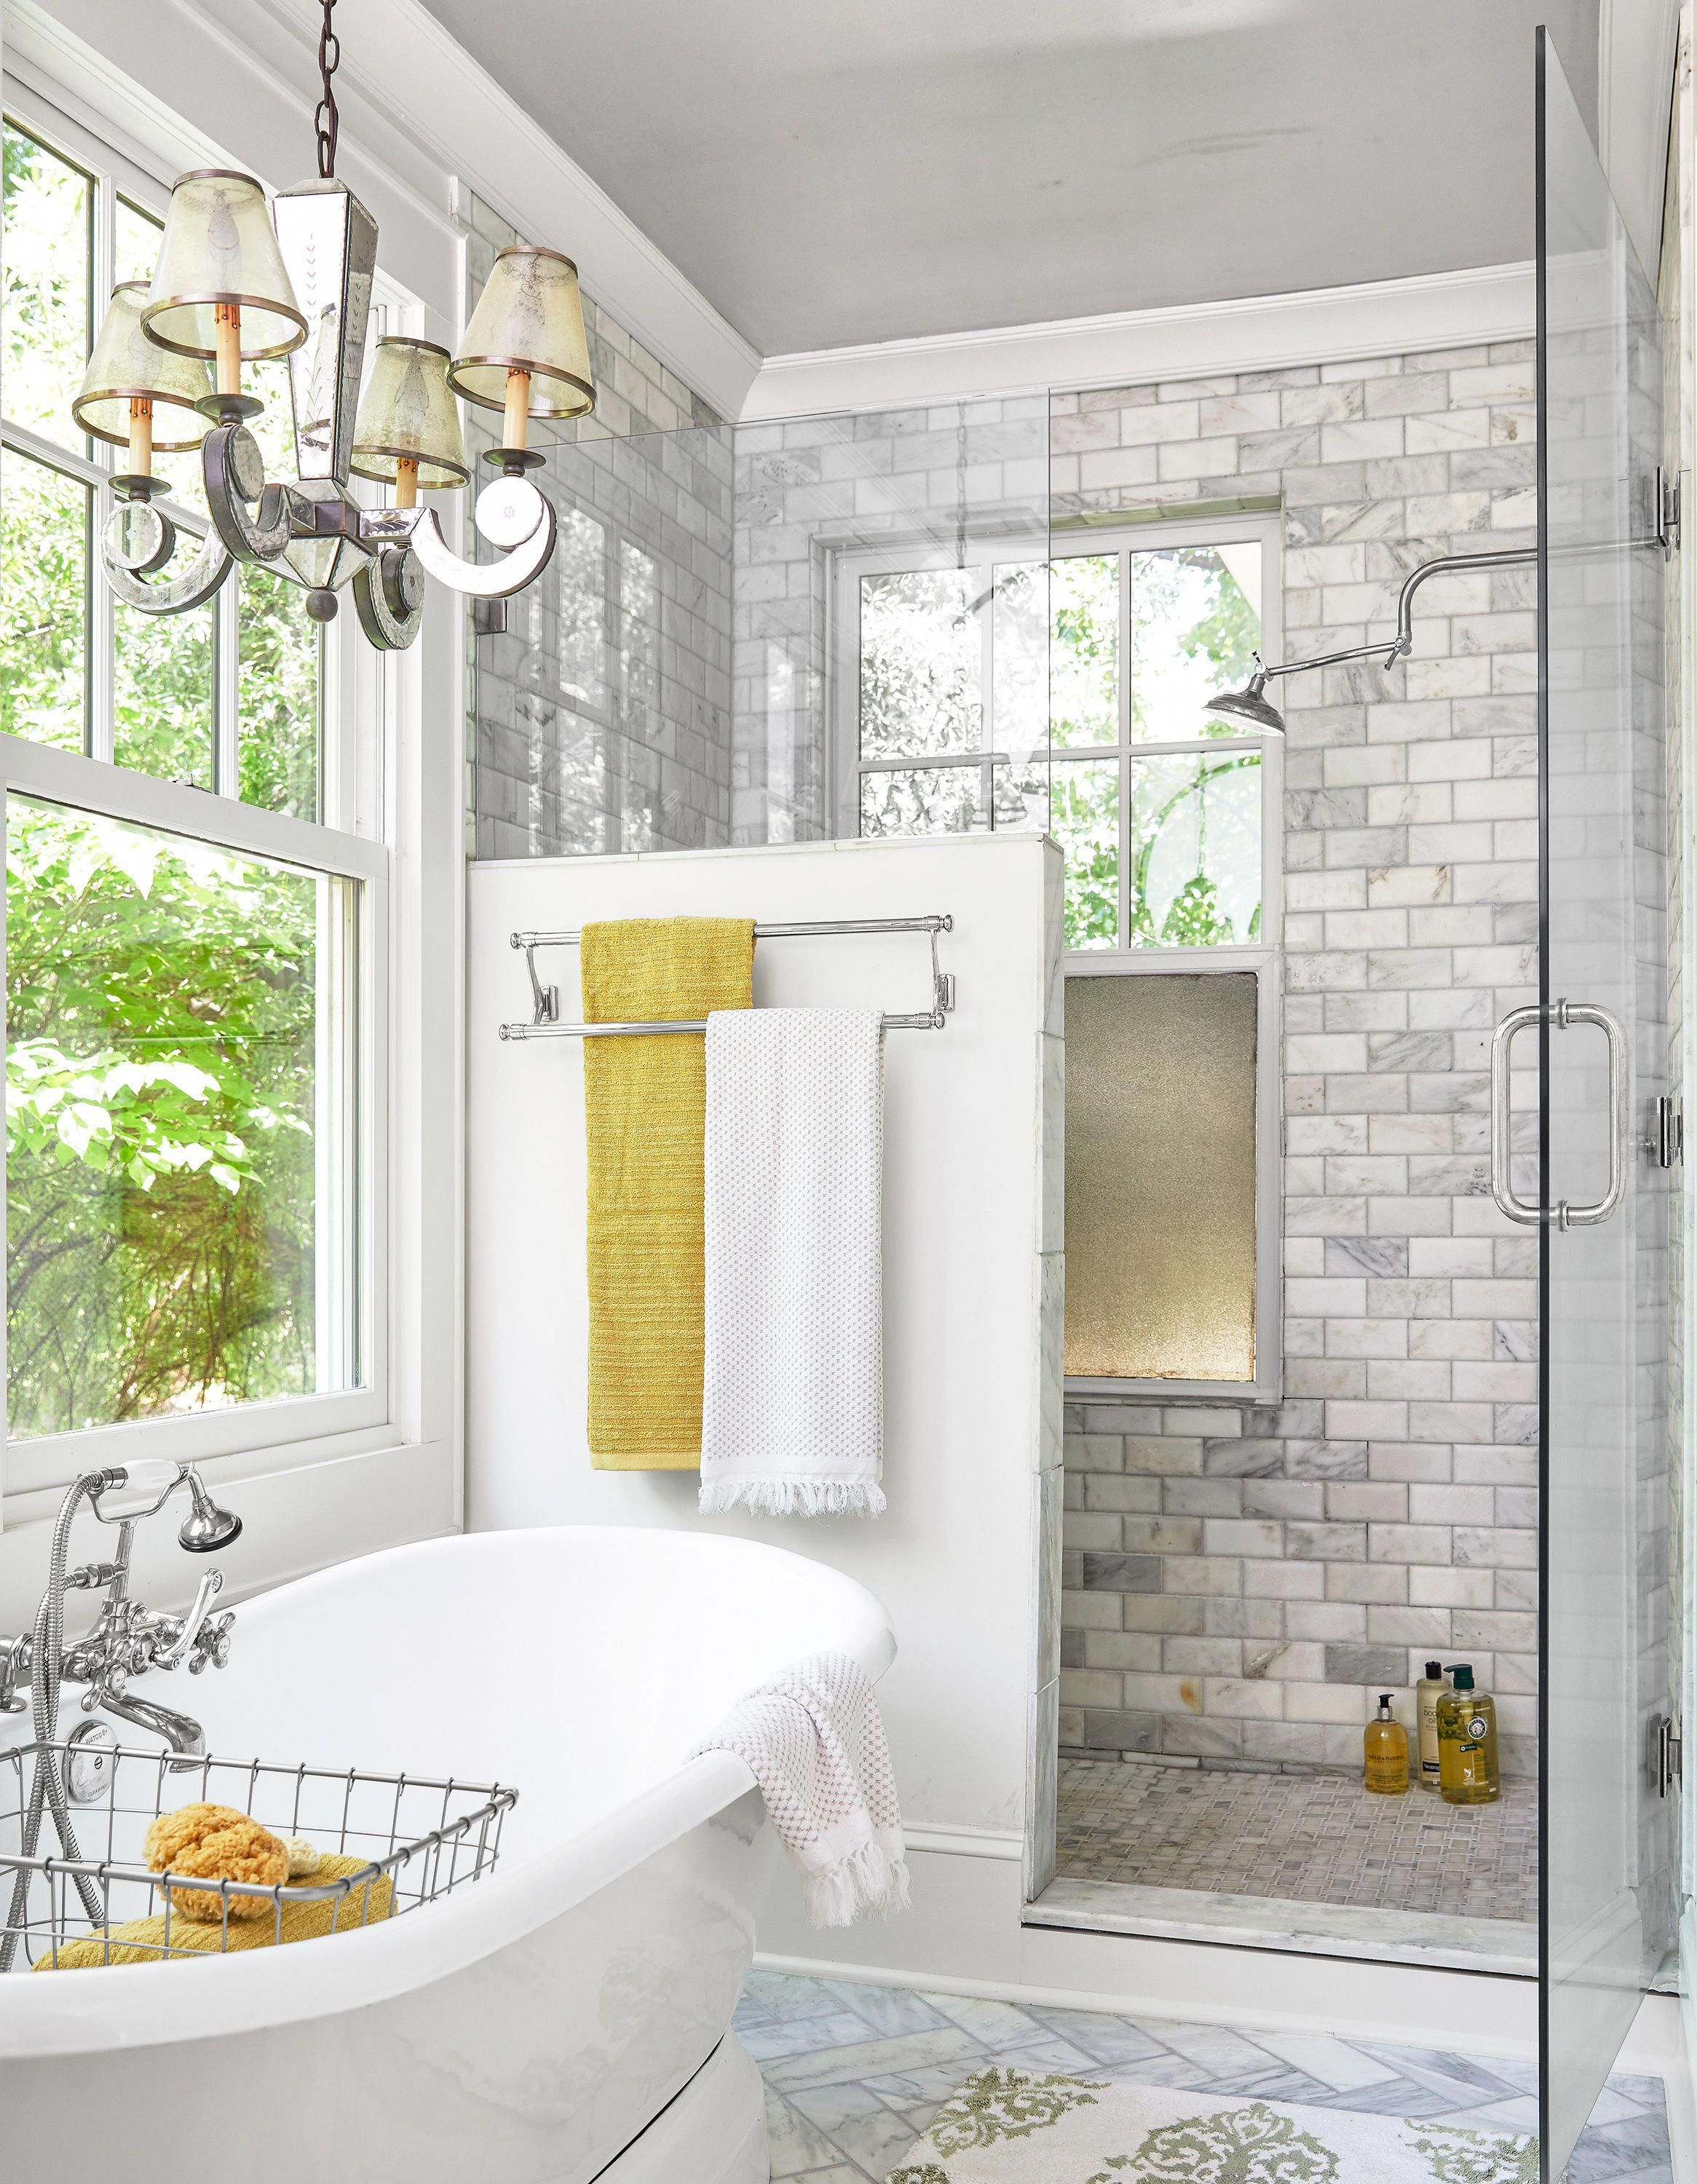 The New Master Suite Includes A Marble Lined Bath With A Cast Iron